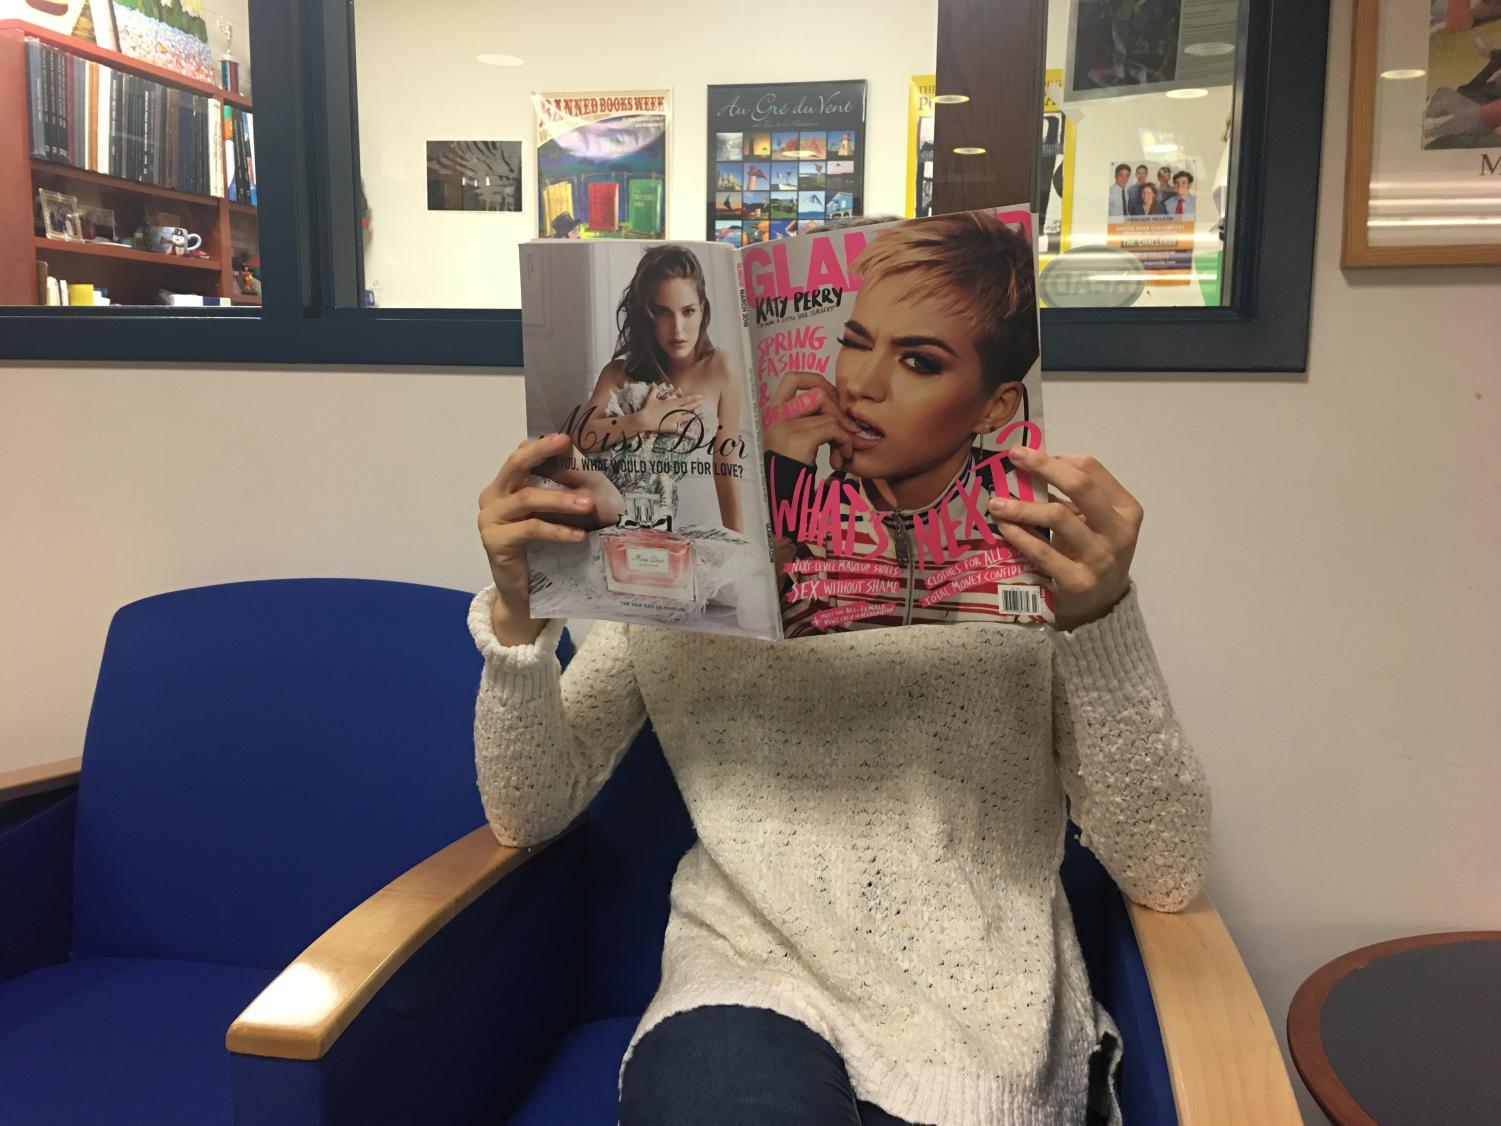 Senior Erin B. reads a magazine about celebrities in the Media Center